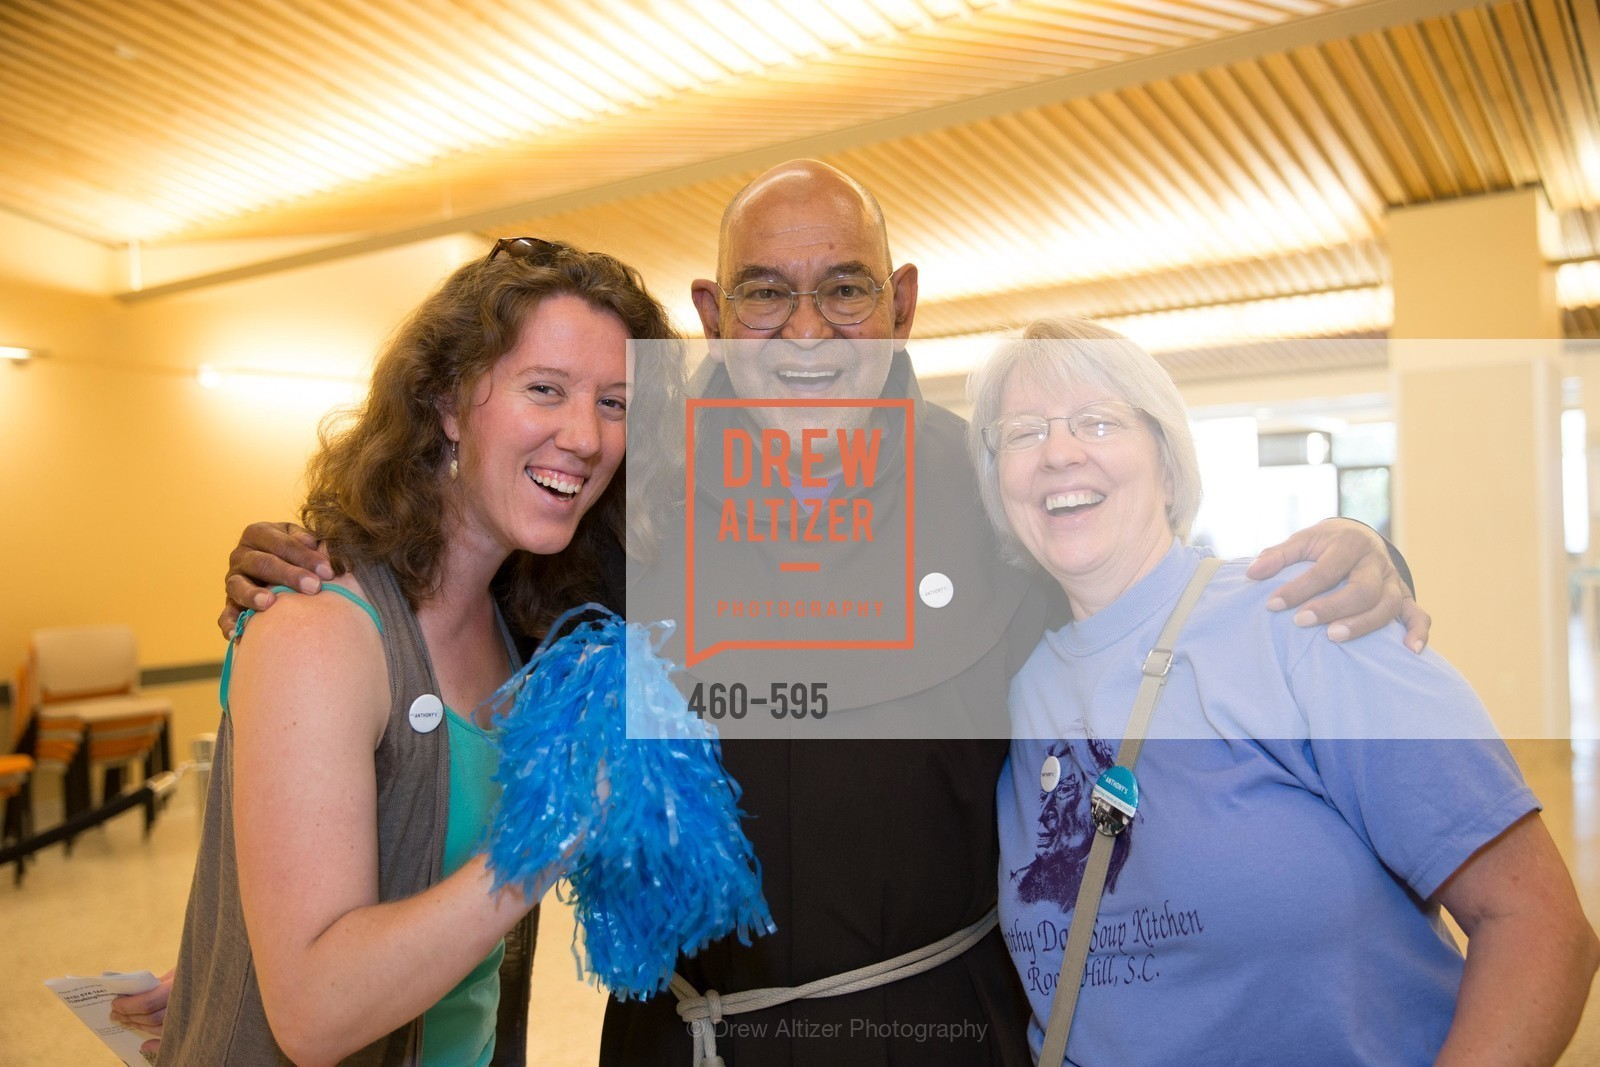 Christine Kehner, Brother John Gutierrez, Susan Schaeffer, ST. ANTHONY'S Dining Room Ribbon Cutting Ceremony, US, October 5th, 2014,Drew Altizer, Drew Altizer Photography, full-service event agency, private events, San Francisco photographer, photographer California